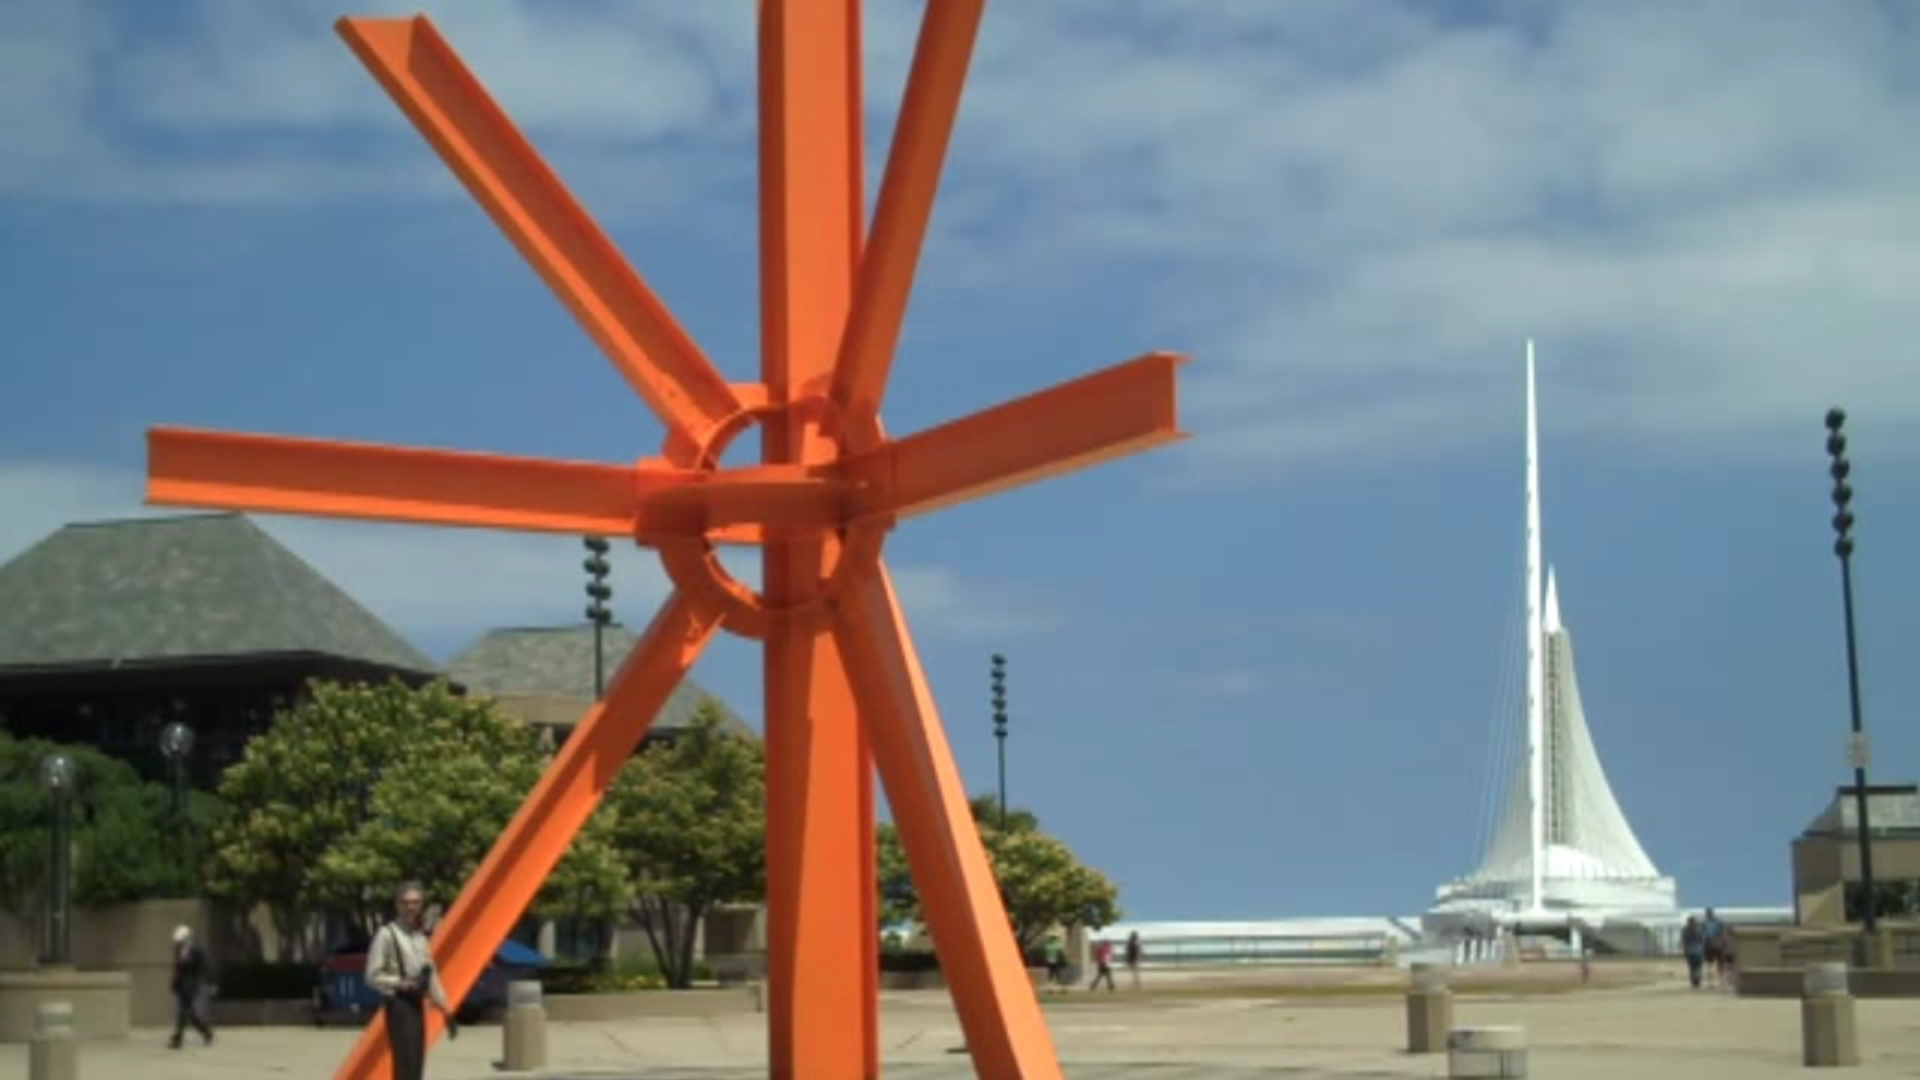 Skrauss Speaks, You Listen -087: Big Orange Girder Thing, Art in Milwuakee